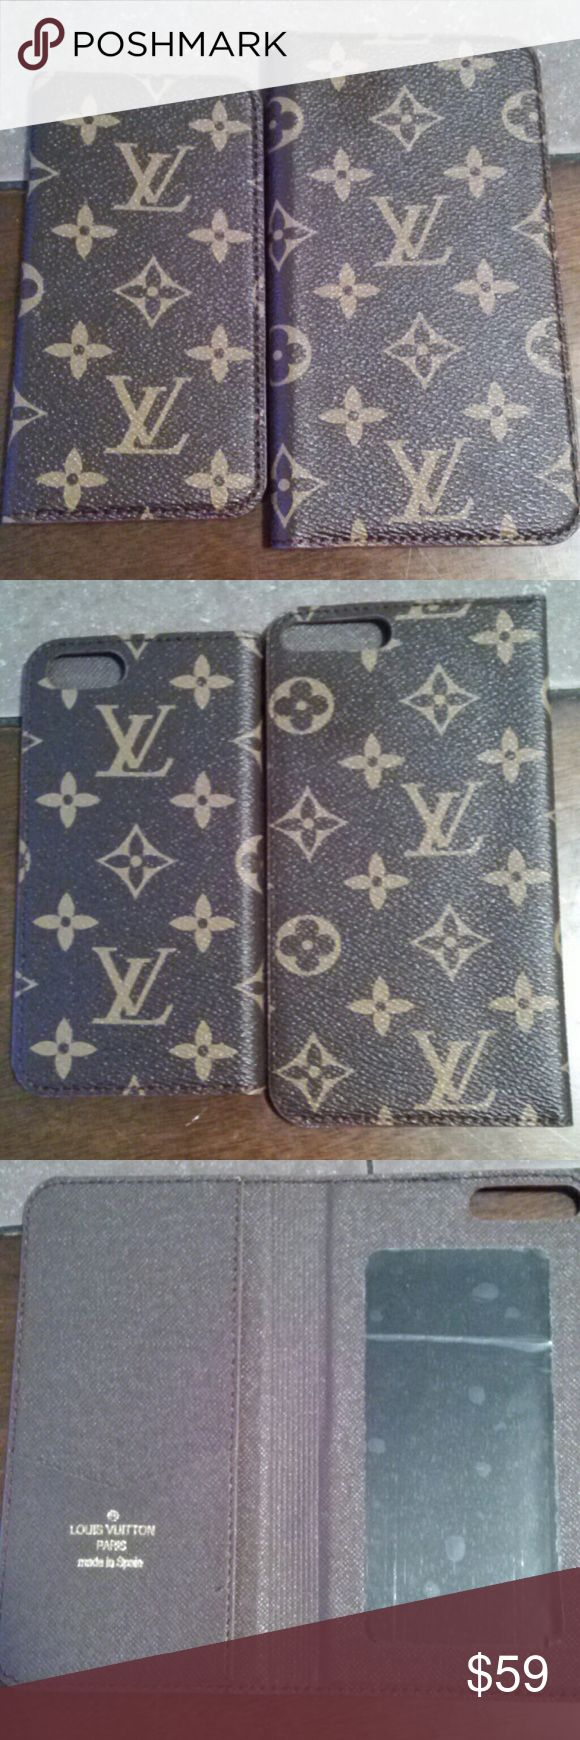 (FS) IPhone 7S, 7plus Case holders Beautiful monogram case holders in style 1 & 2 only. Nwot Comes with box Accessories Phone Cases